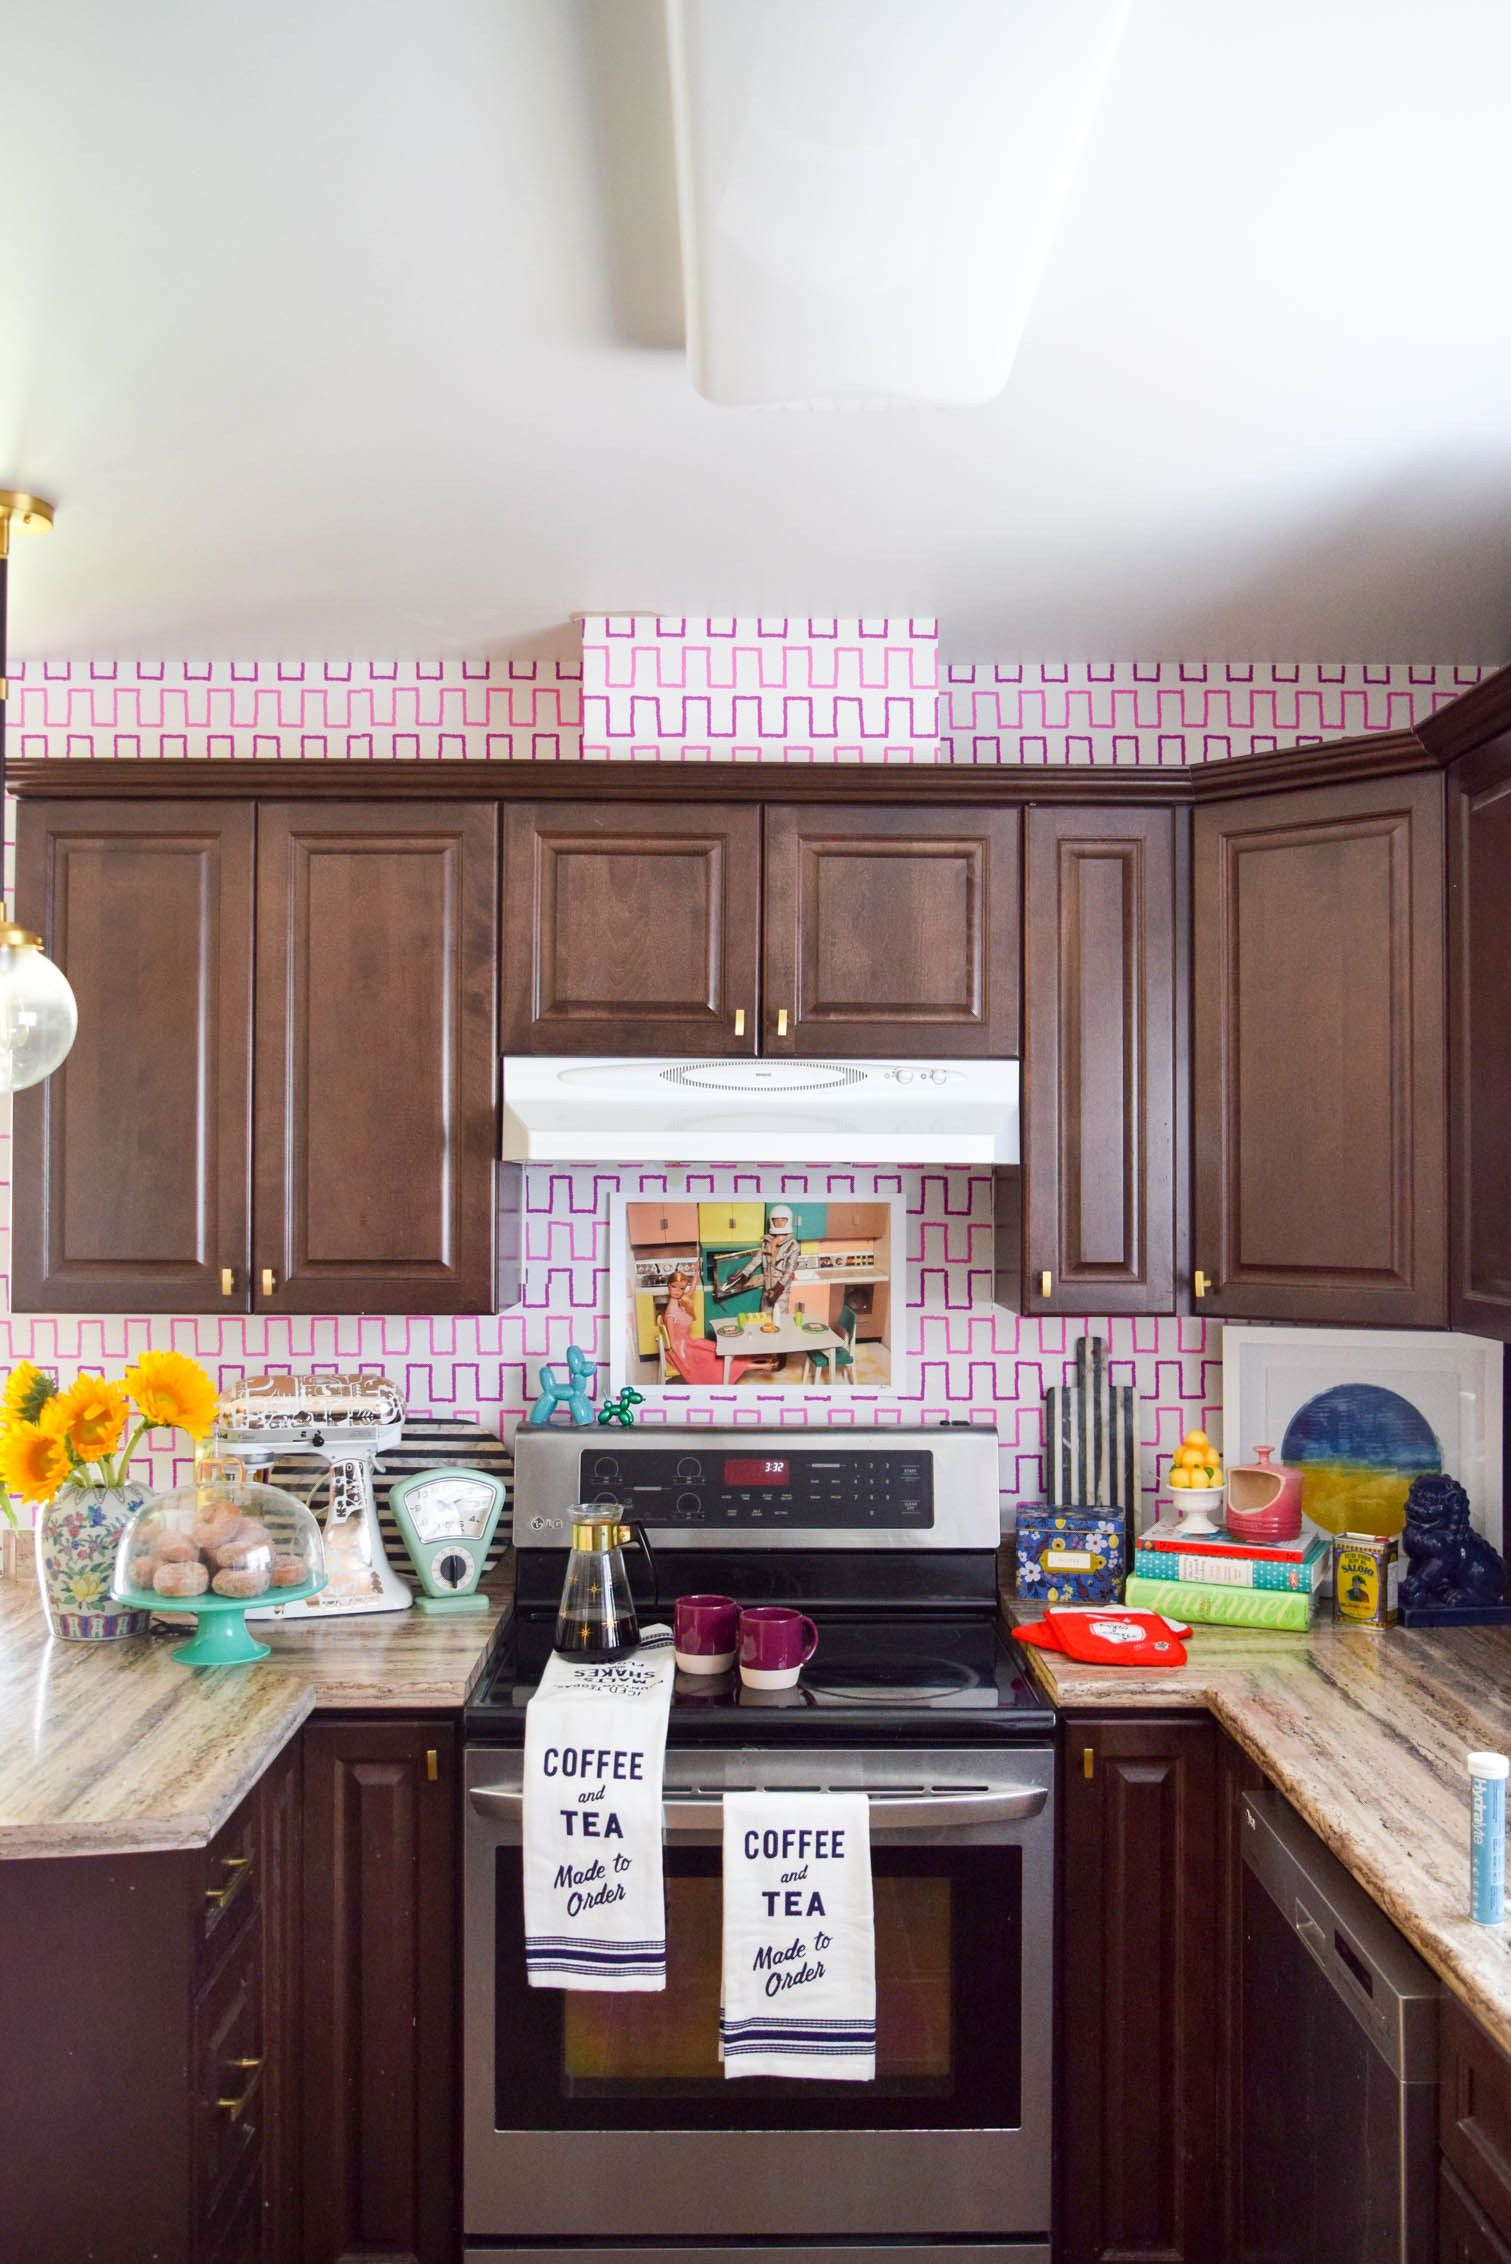 Stove And Cupboards In A Kitchen With Colourful Backsplash